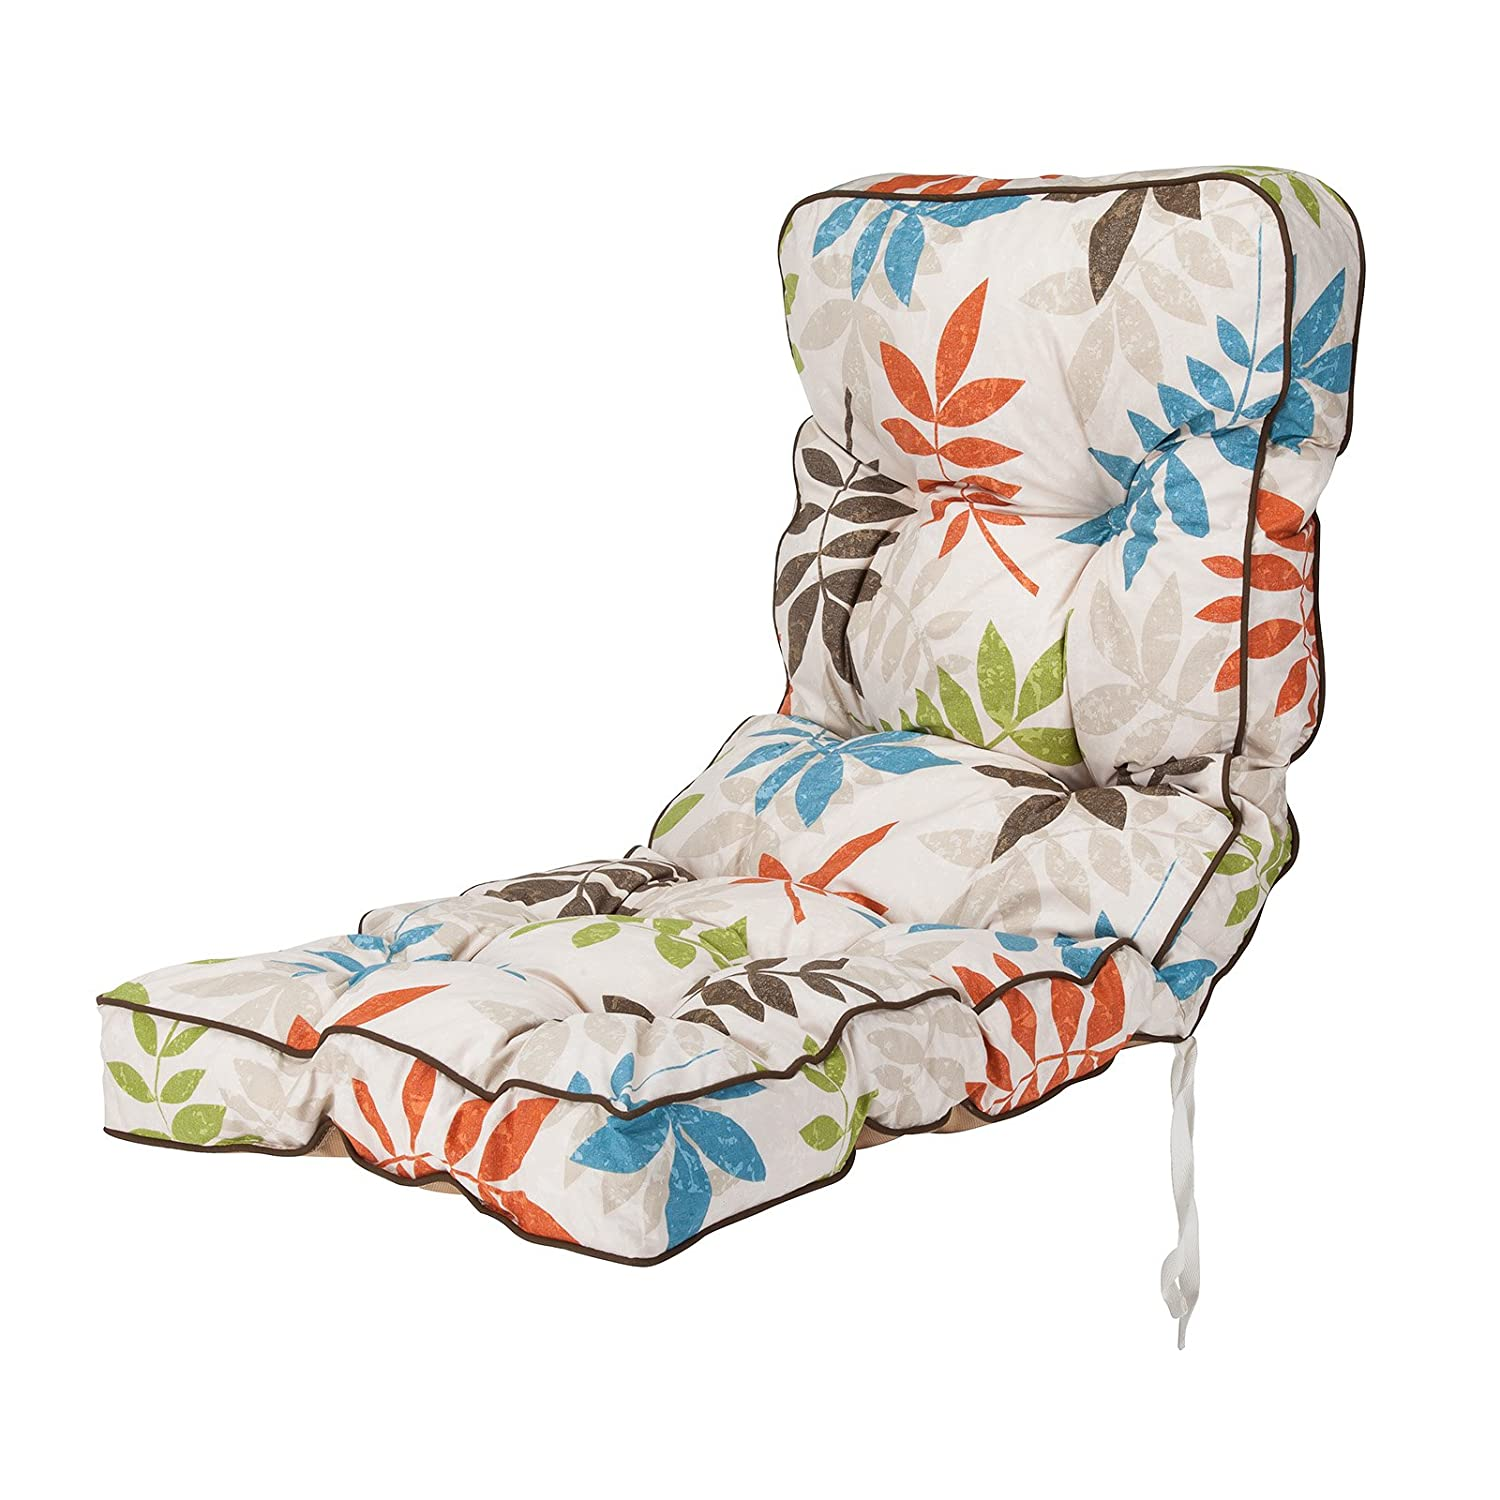 Replacement Classic Outdoor Garden Recliner Chair Cushion - Choice of Prints (Green) Alfresia